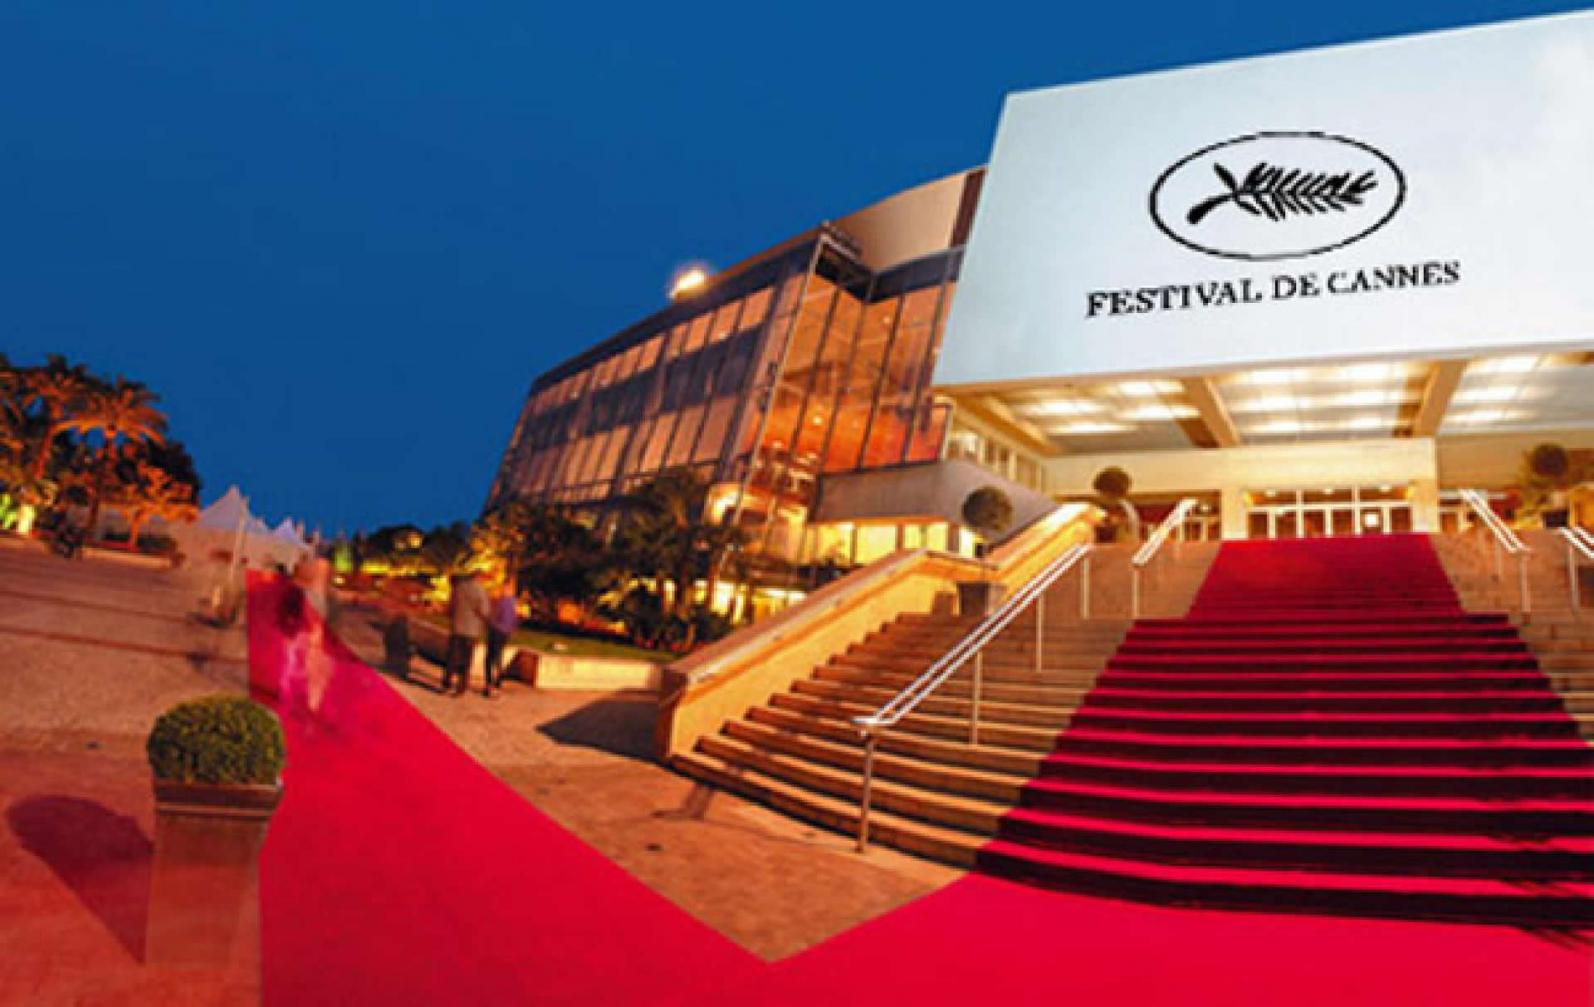 Palais des Festivals is 10 mins easy walk from the apartment